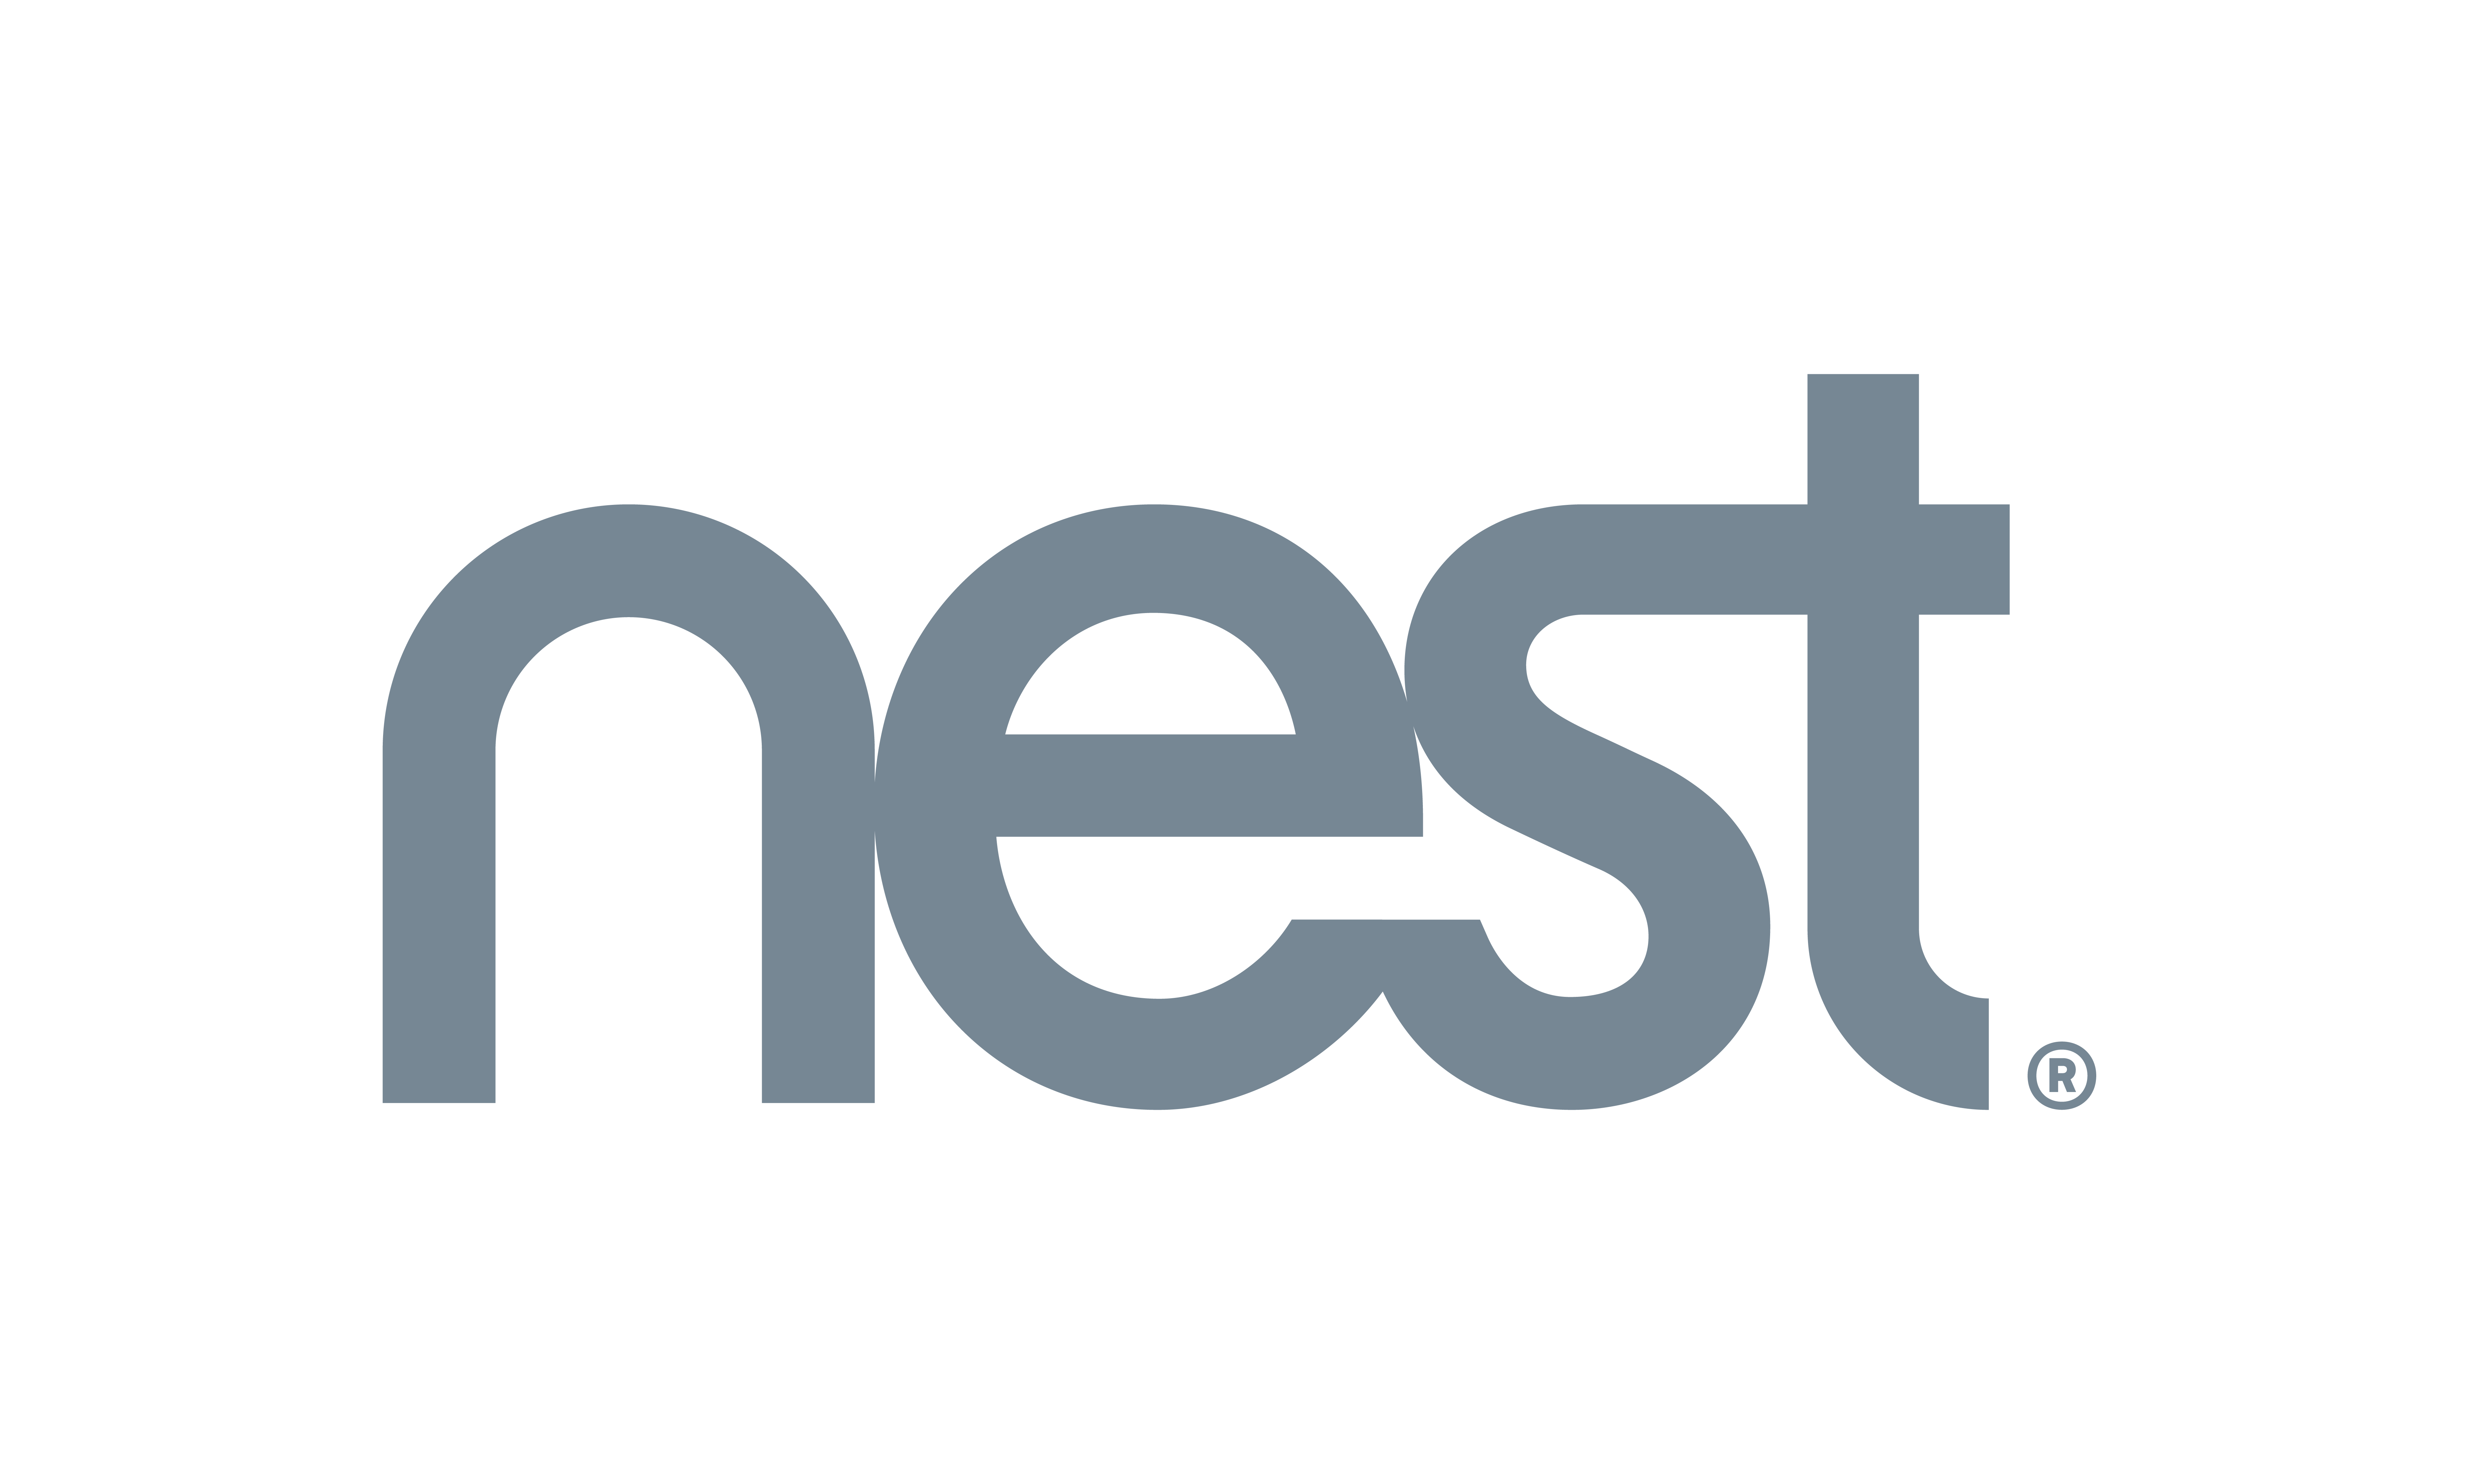 Nest data integration social